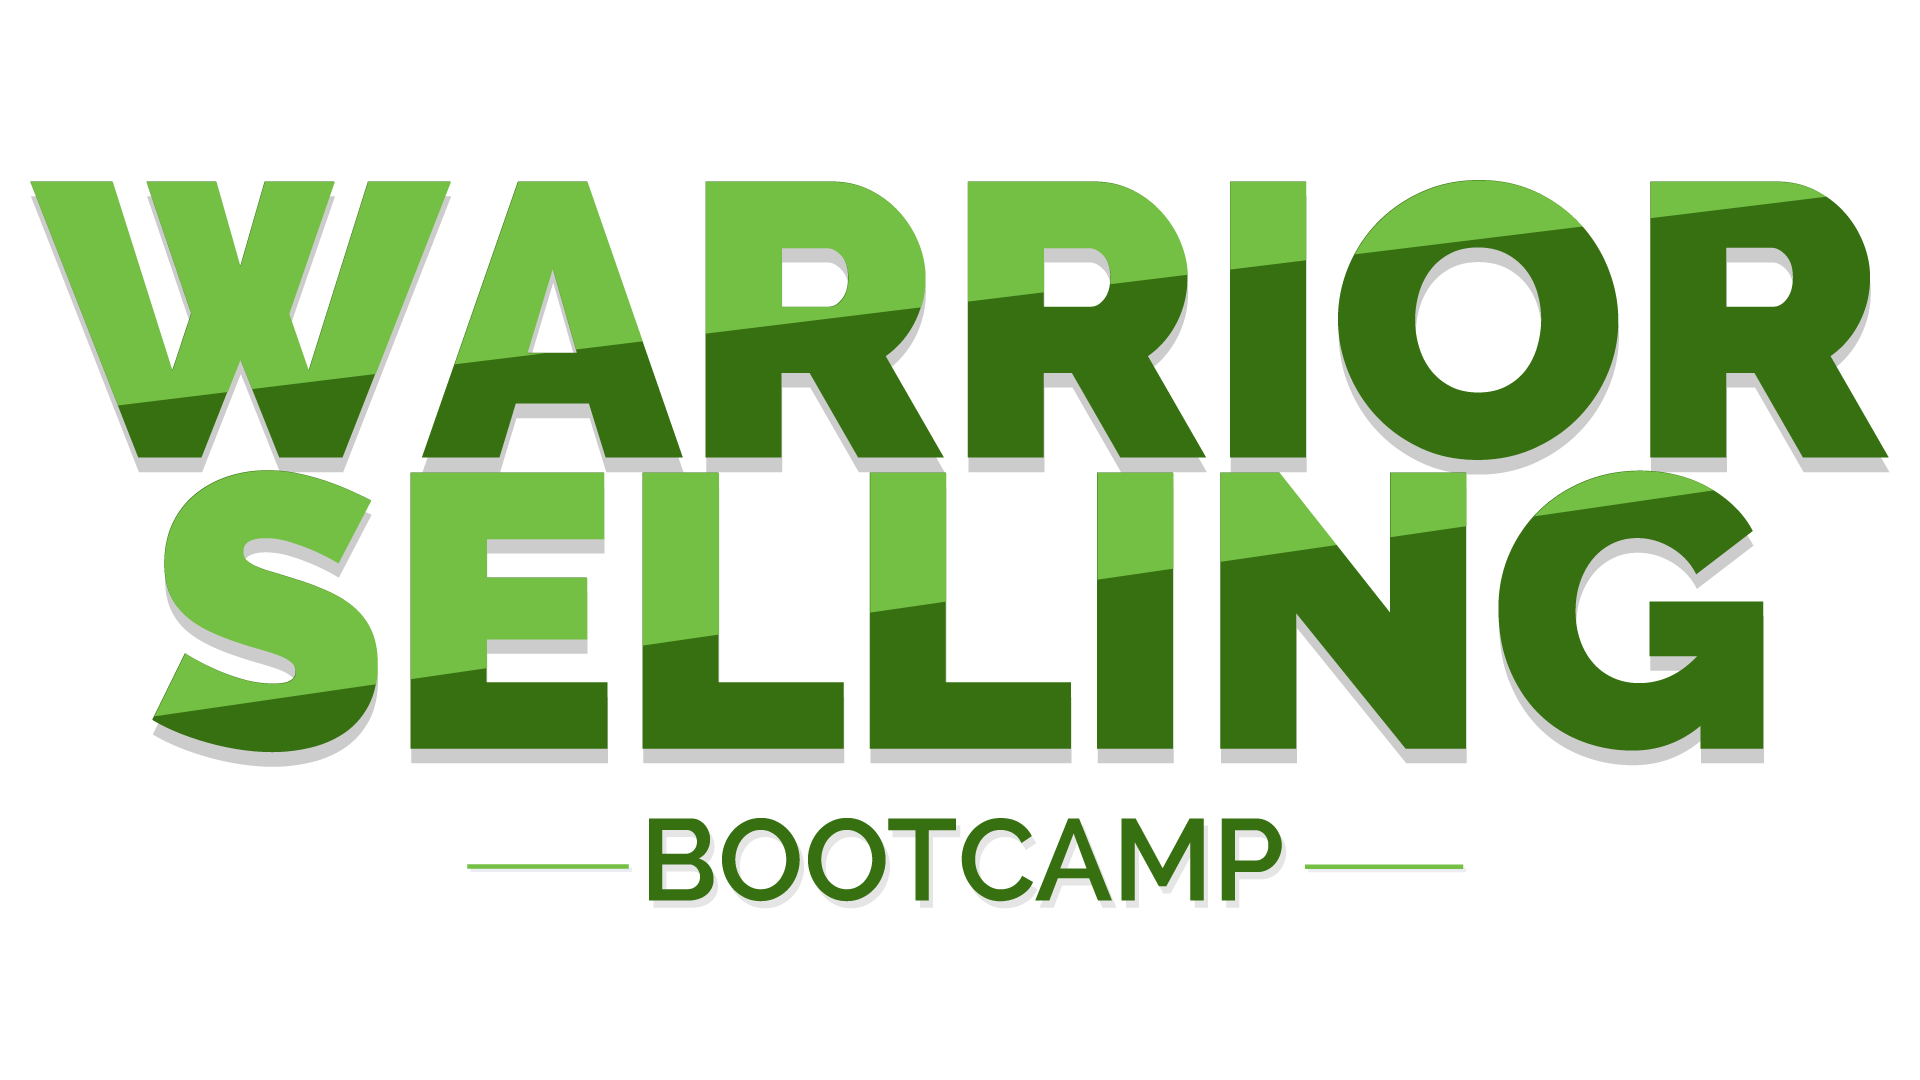 WARRIOR SELLING® BOOTCAMP